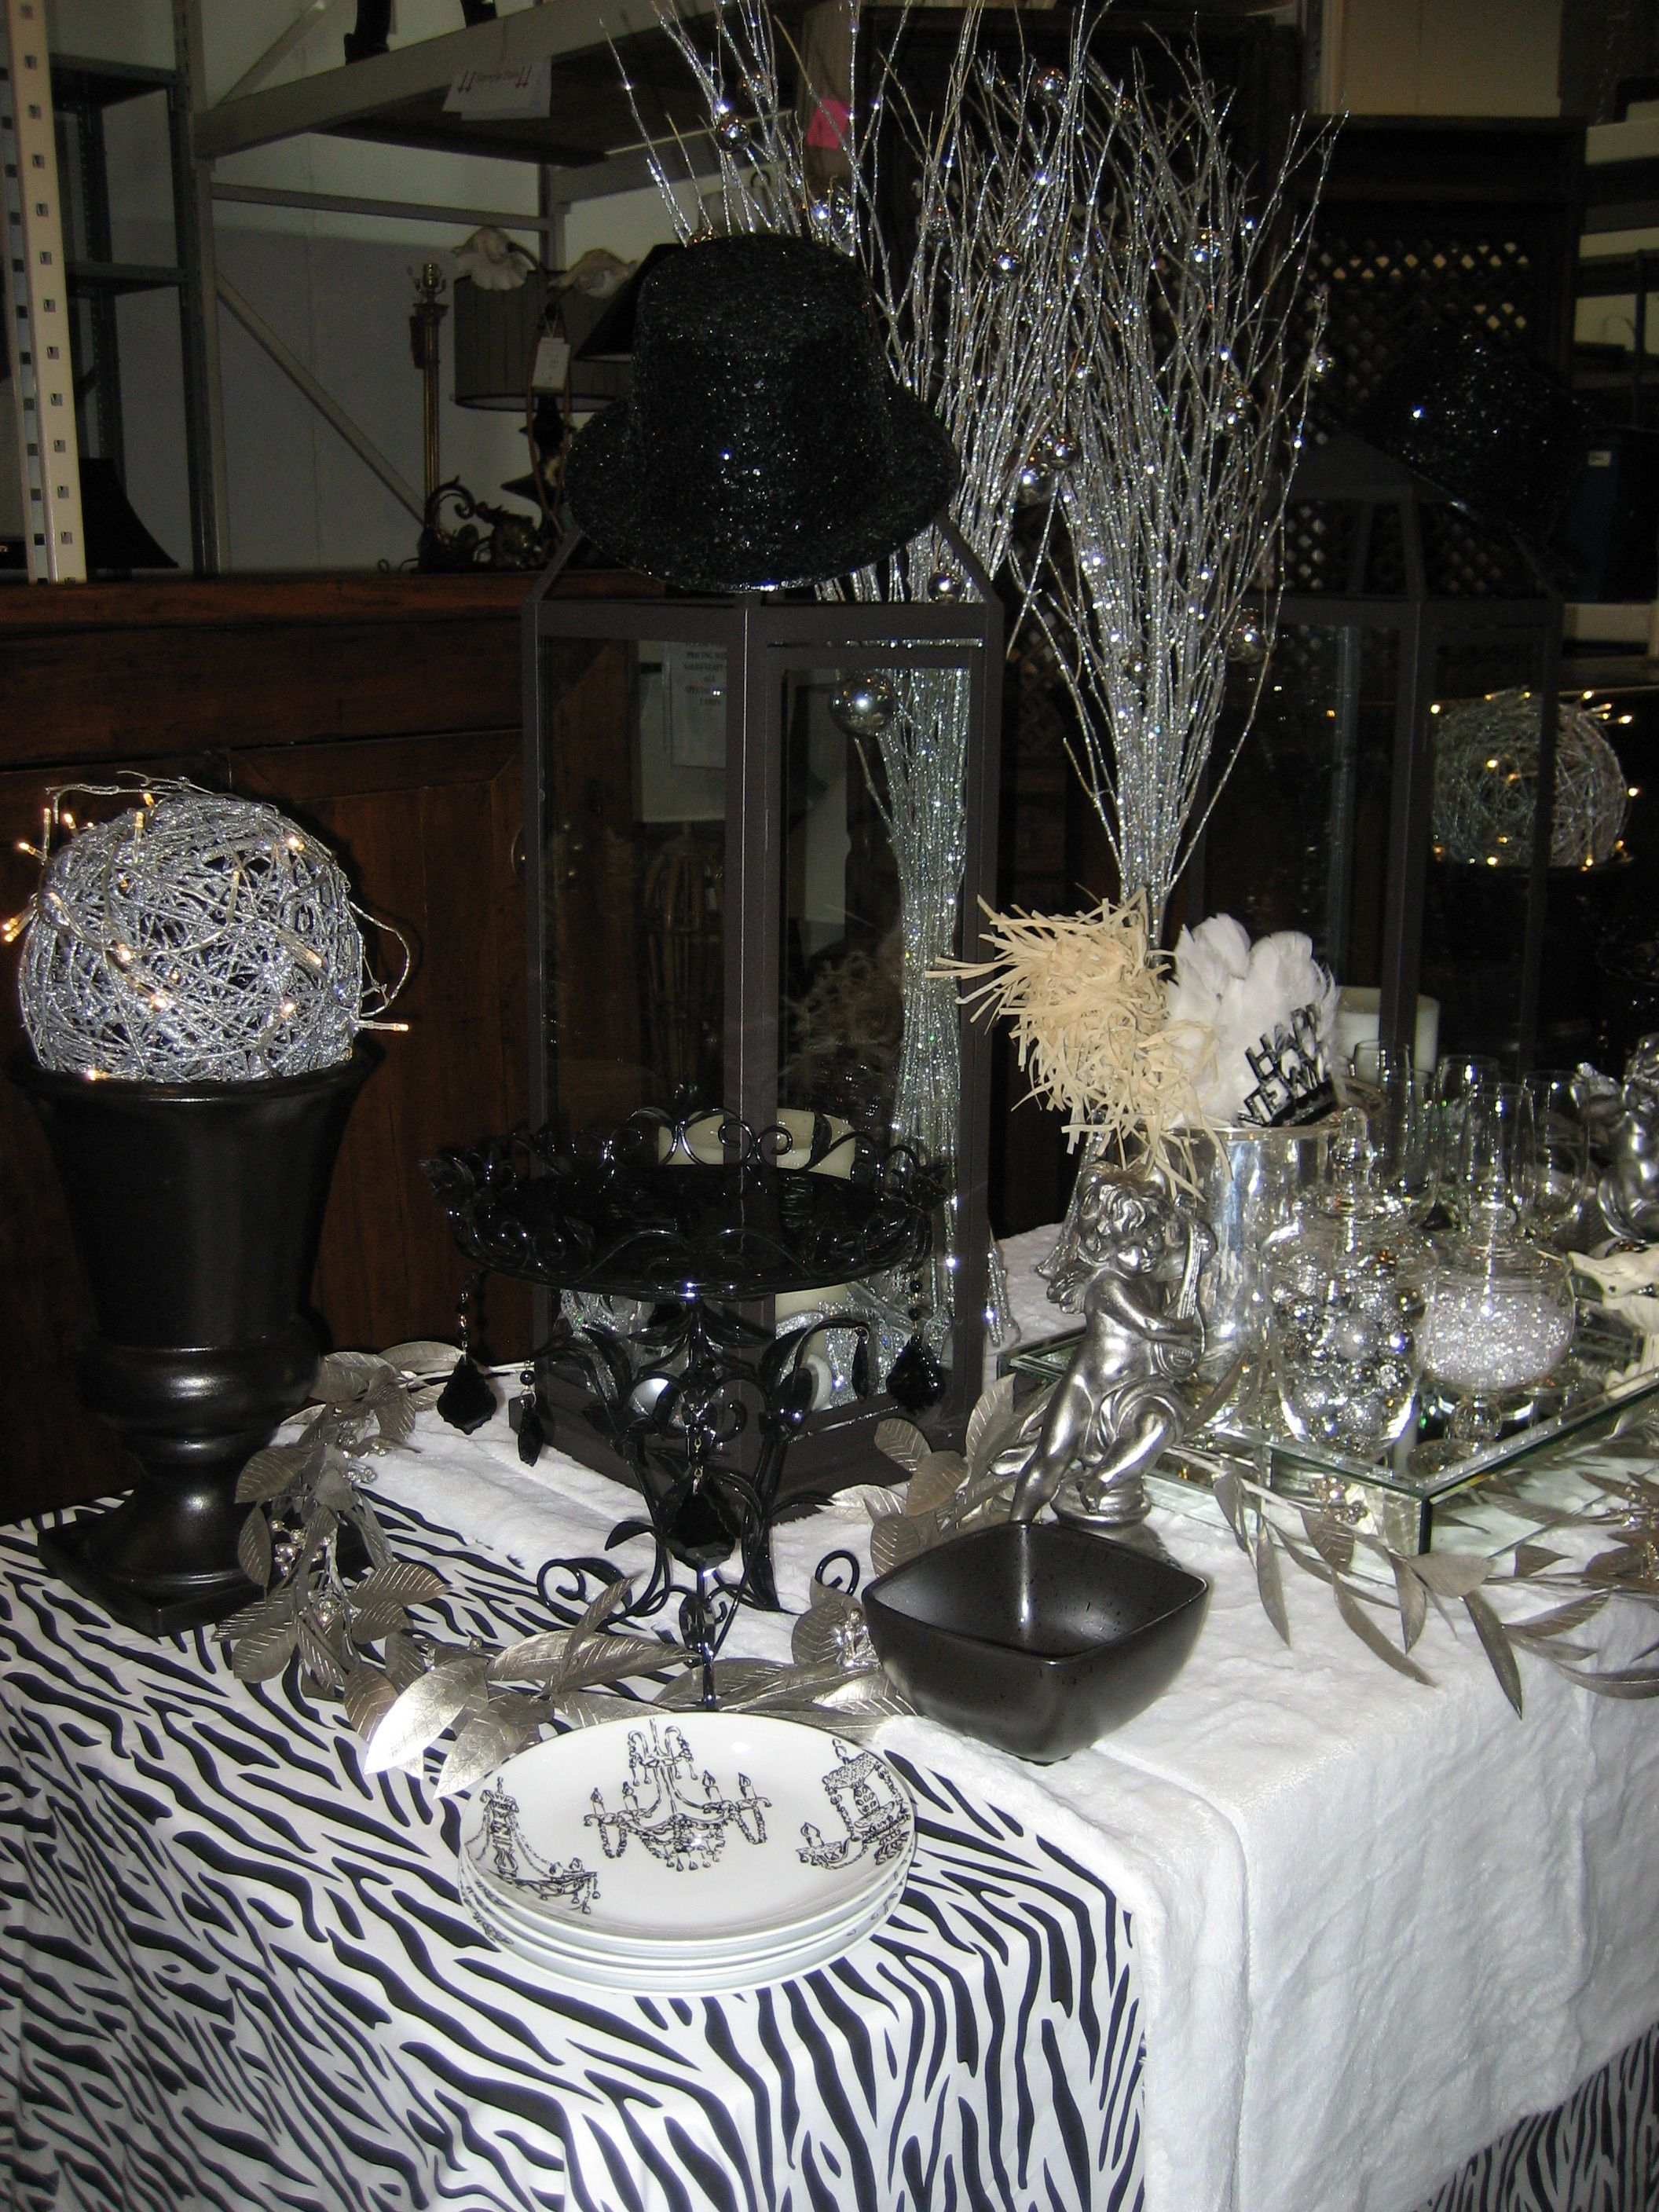 Top Hat Centerpieces For Table - Ring In The New